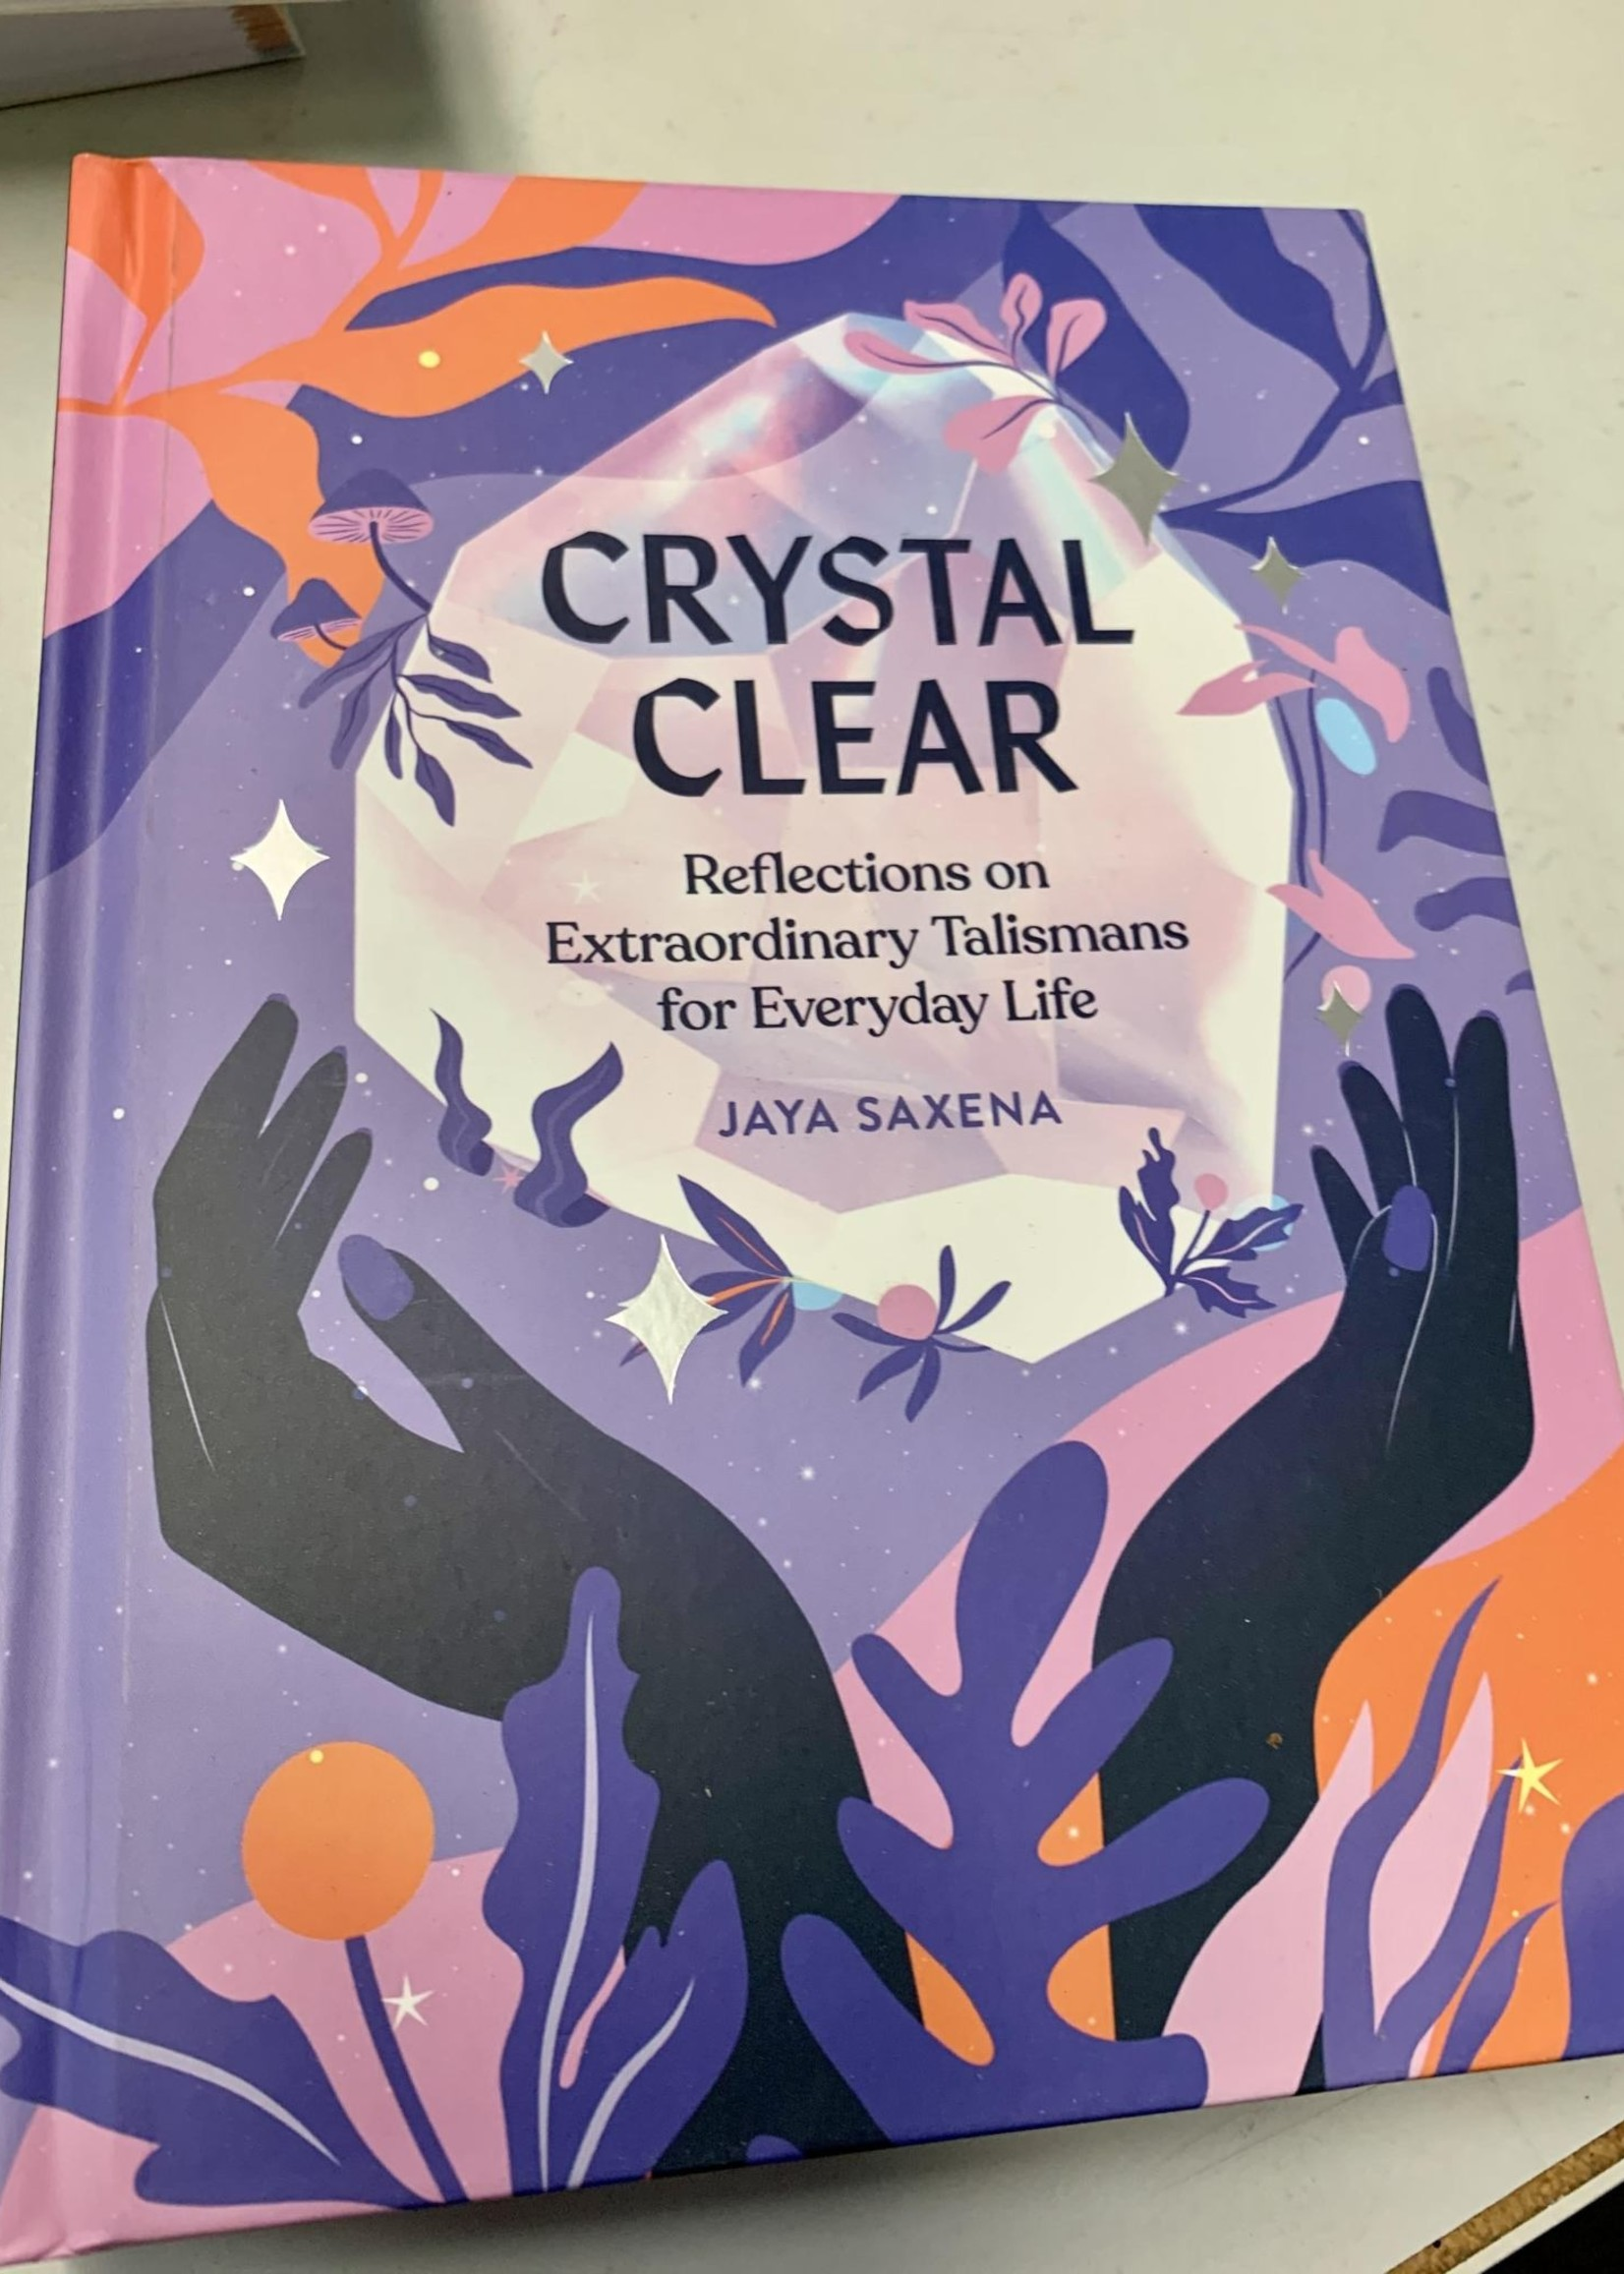 Crystal Clear REFLECTIONS ON EXTRAORDINARY TALISMANS FOR EVERYDAY LIFE - By JAYA SAXENA